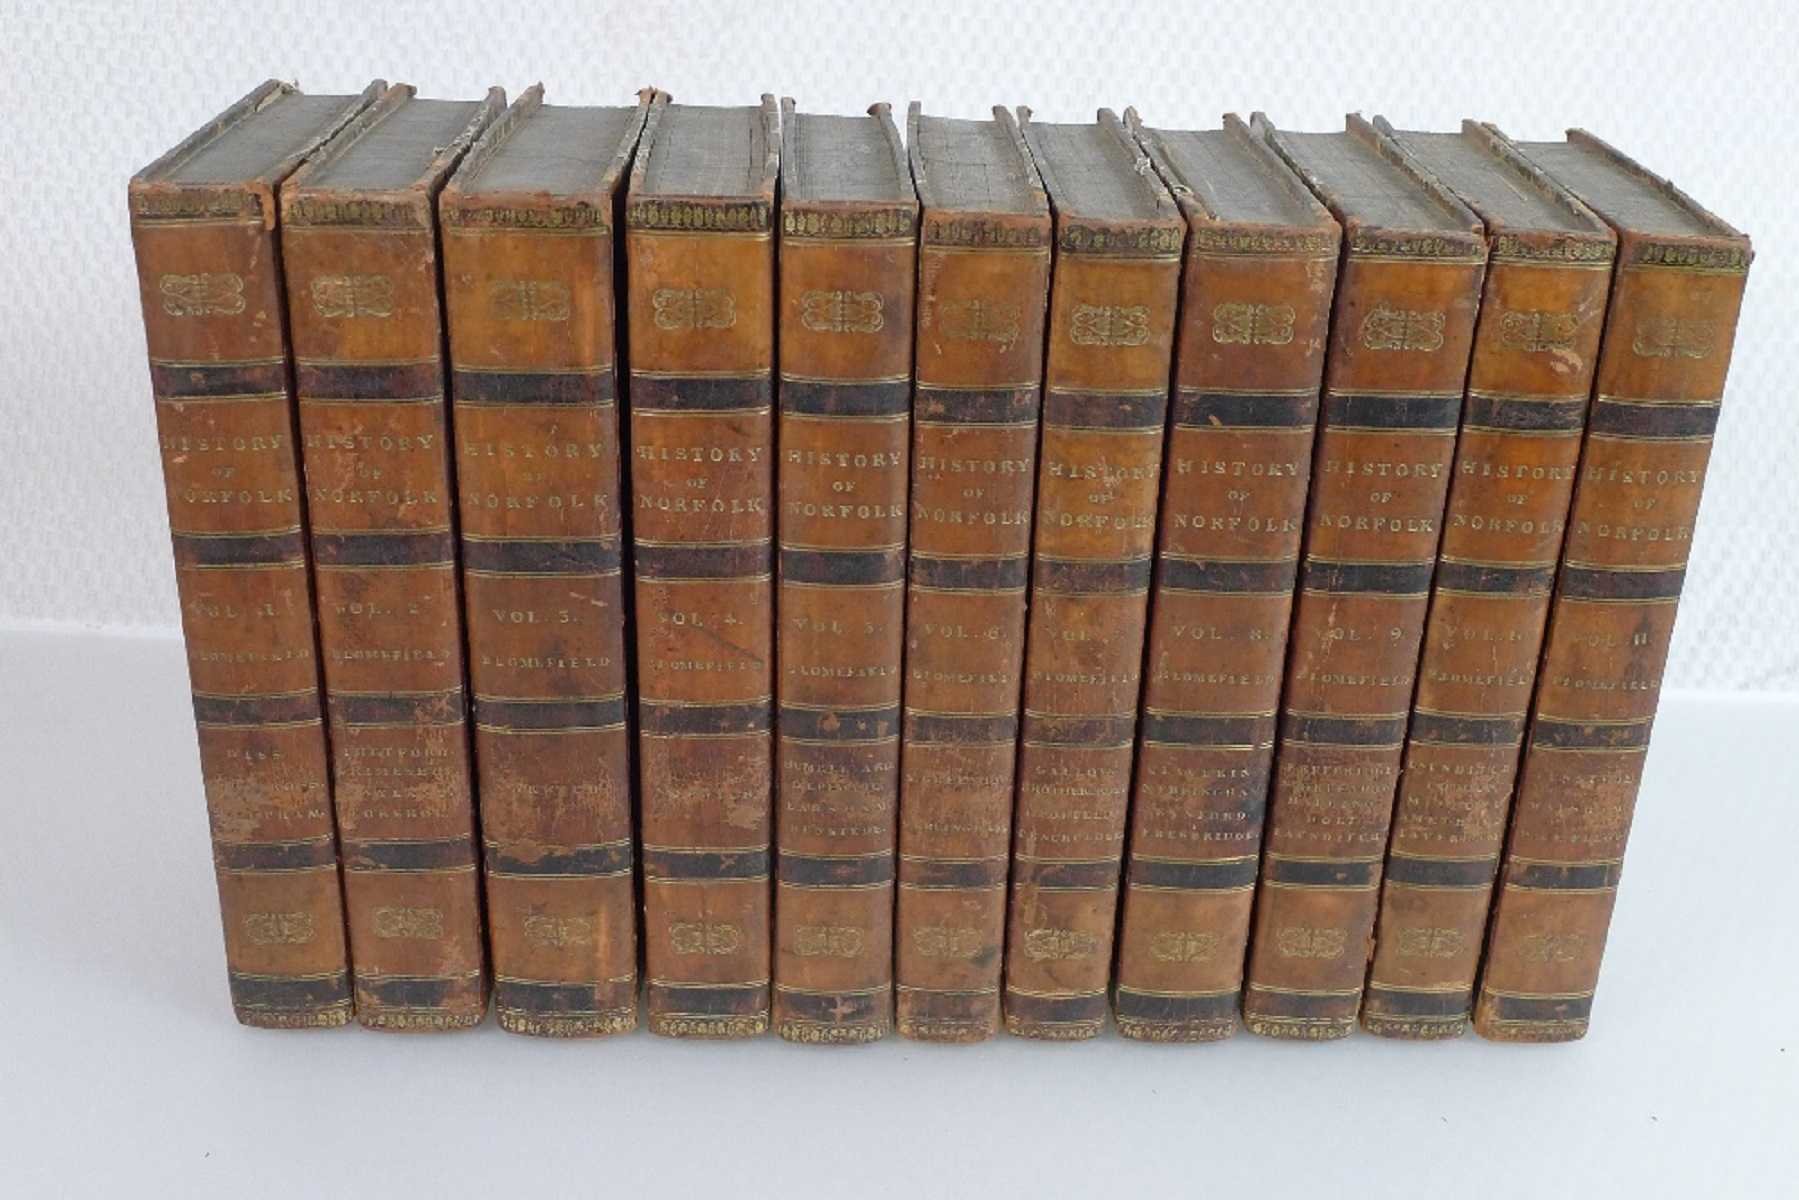 All 11 volumes of An Essay Towards the Topographical History of the County of Norfolk by Thomas